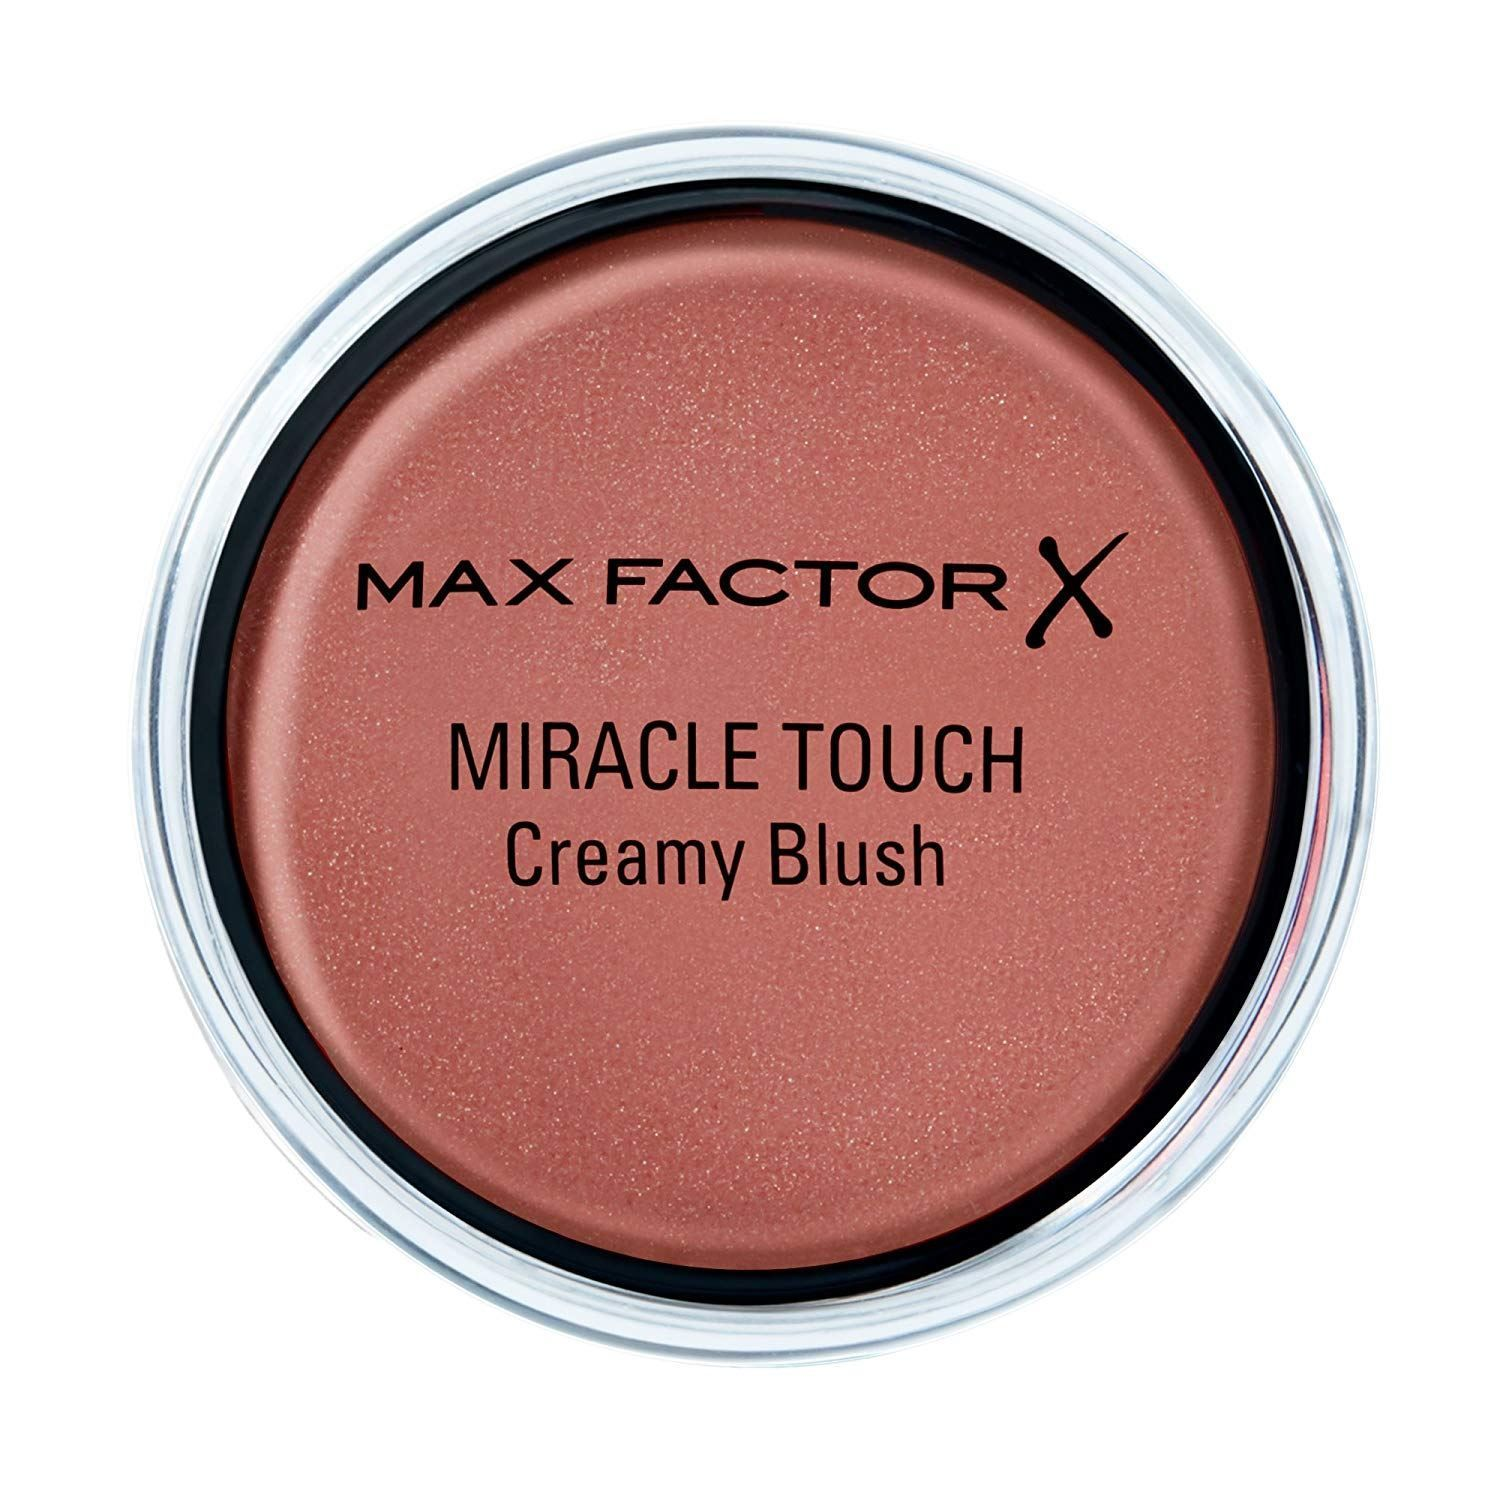 Miracle Touch Creamy Blush (All Shades)